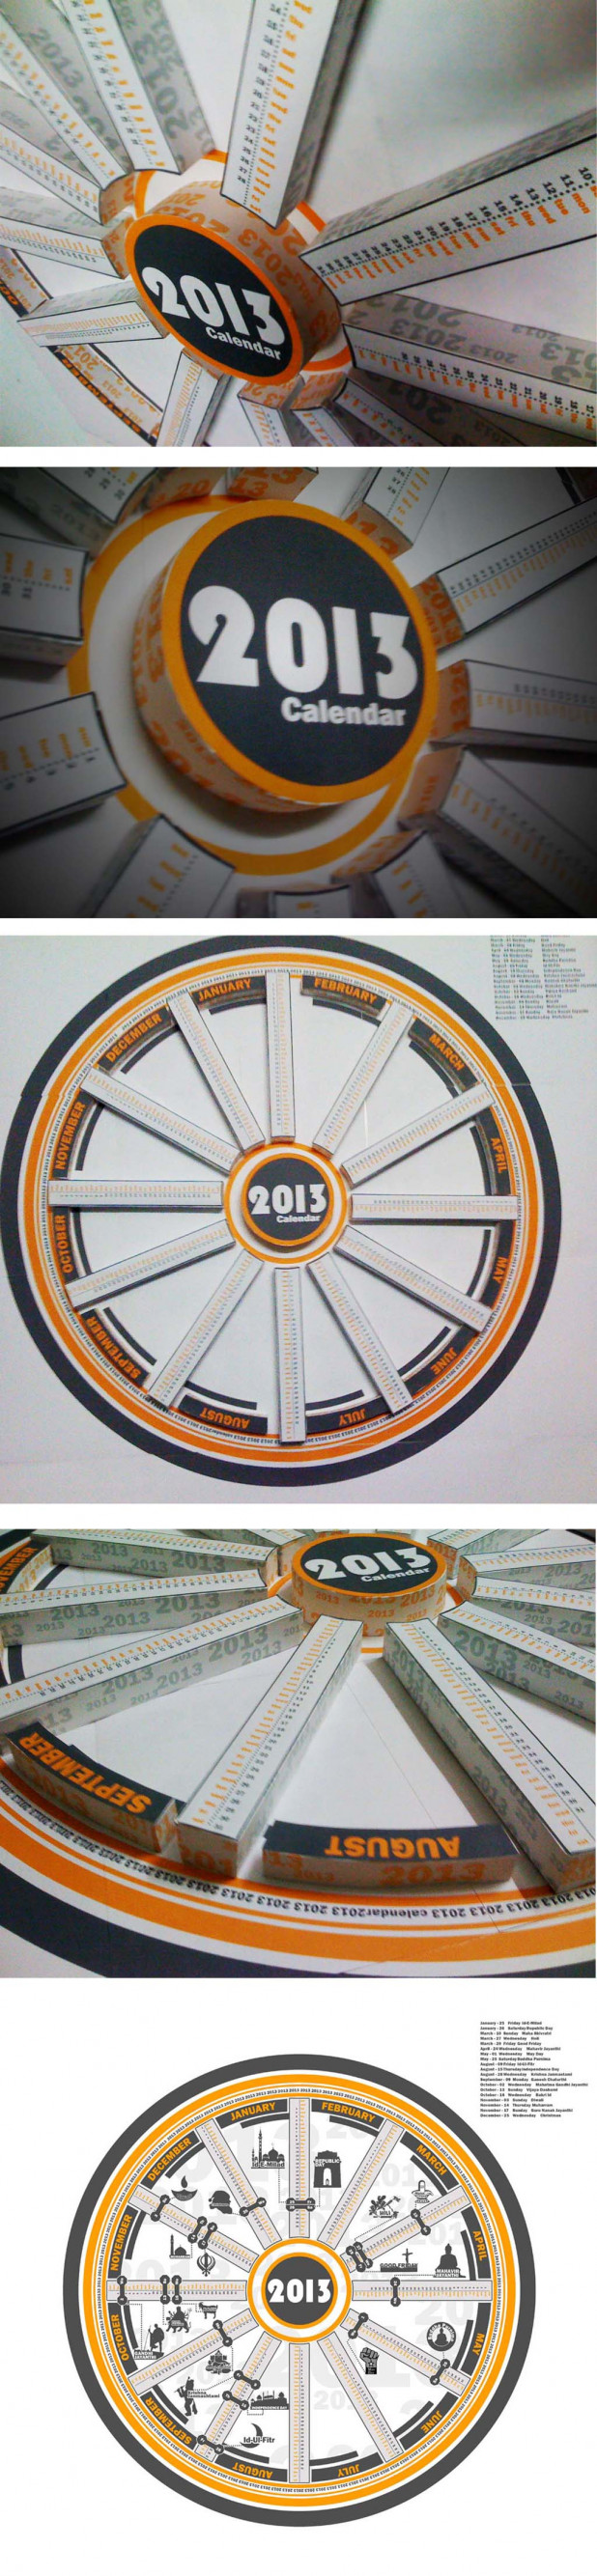 2013 calendar, infographic paper crafted